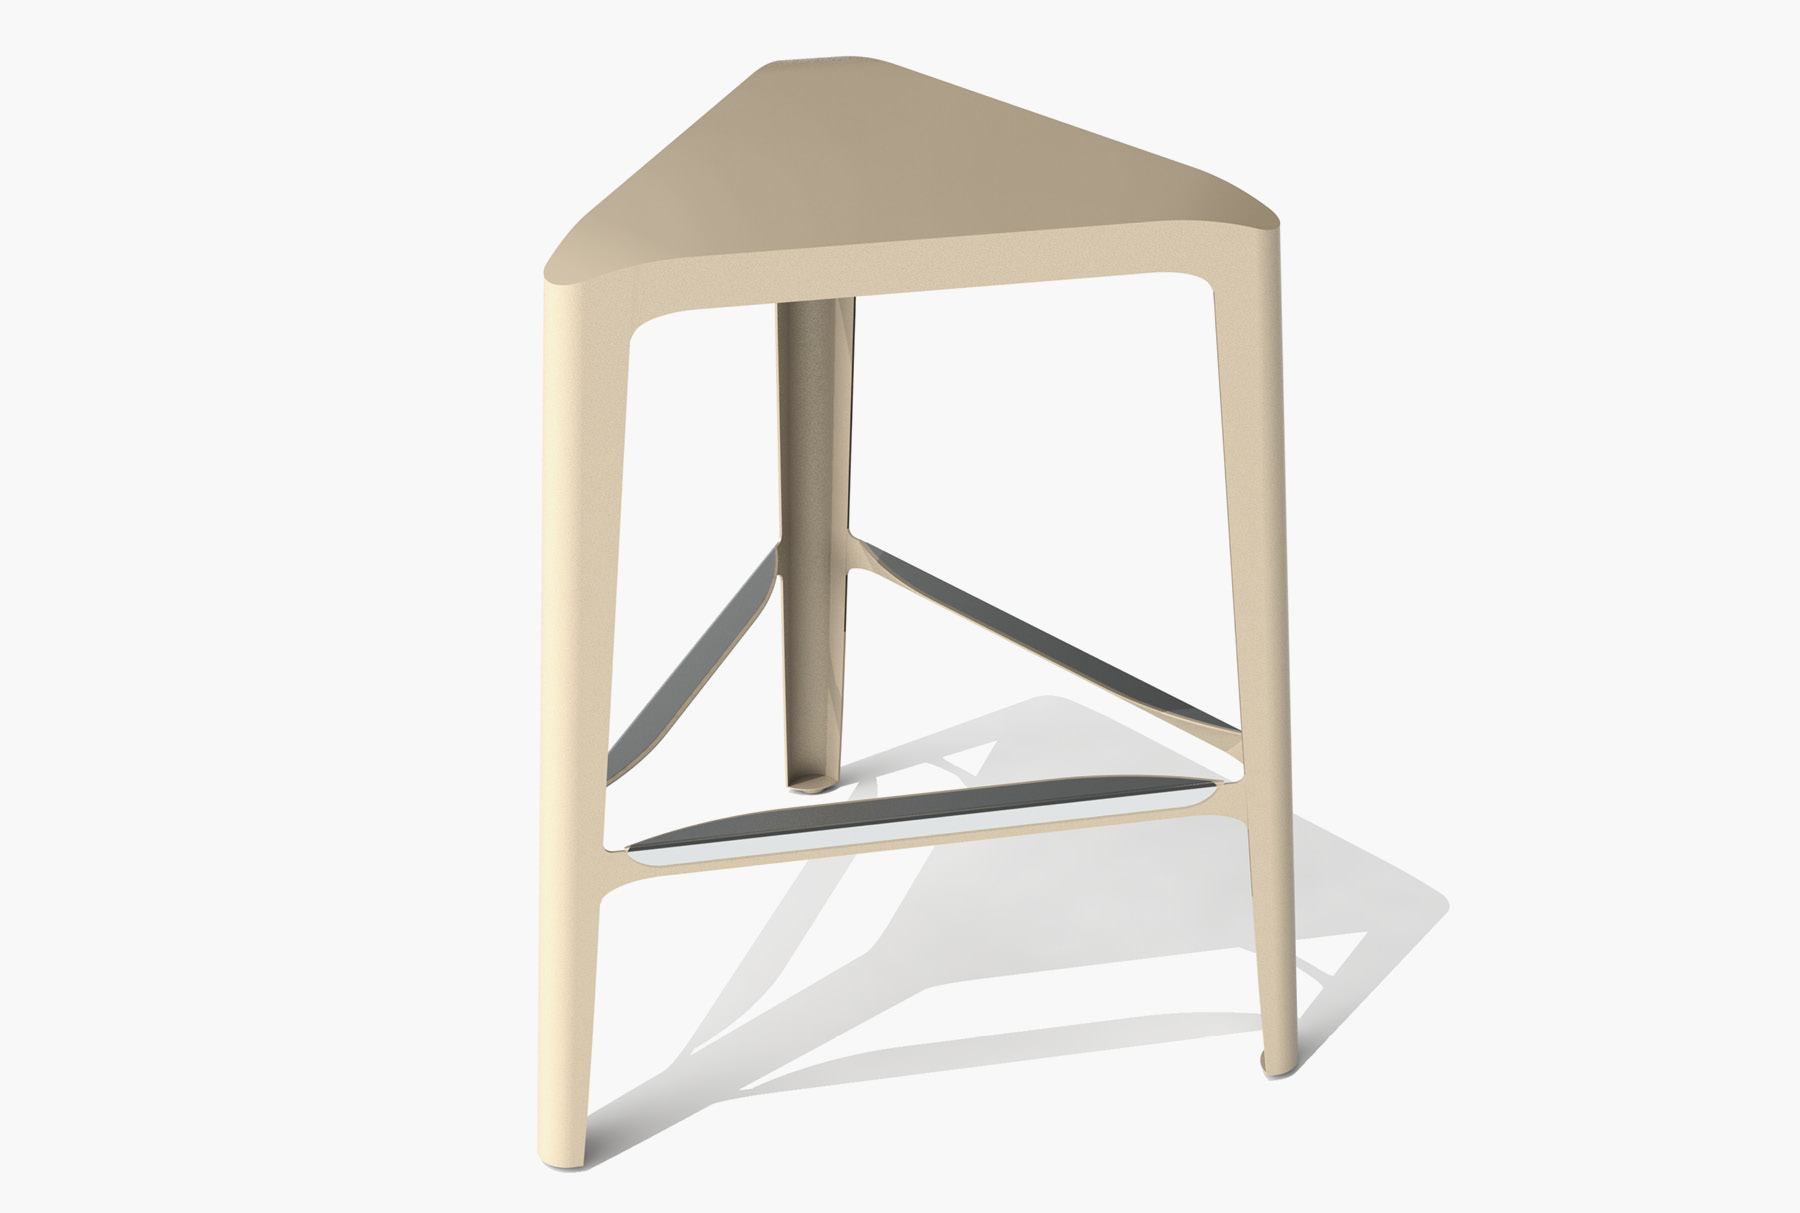 Arktura Clic Mid Stool in Chilled Champagne